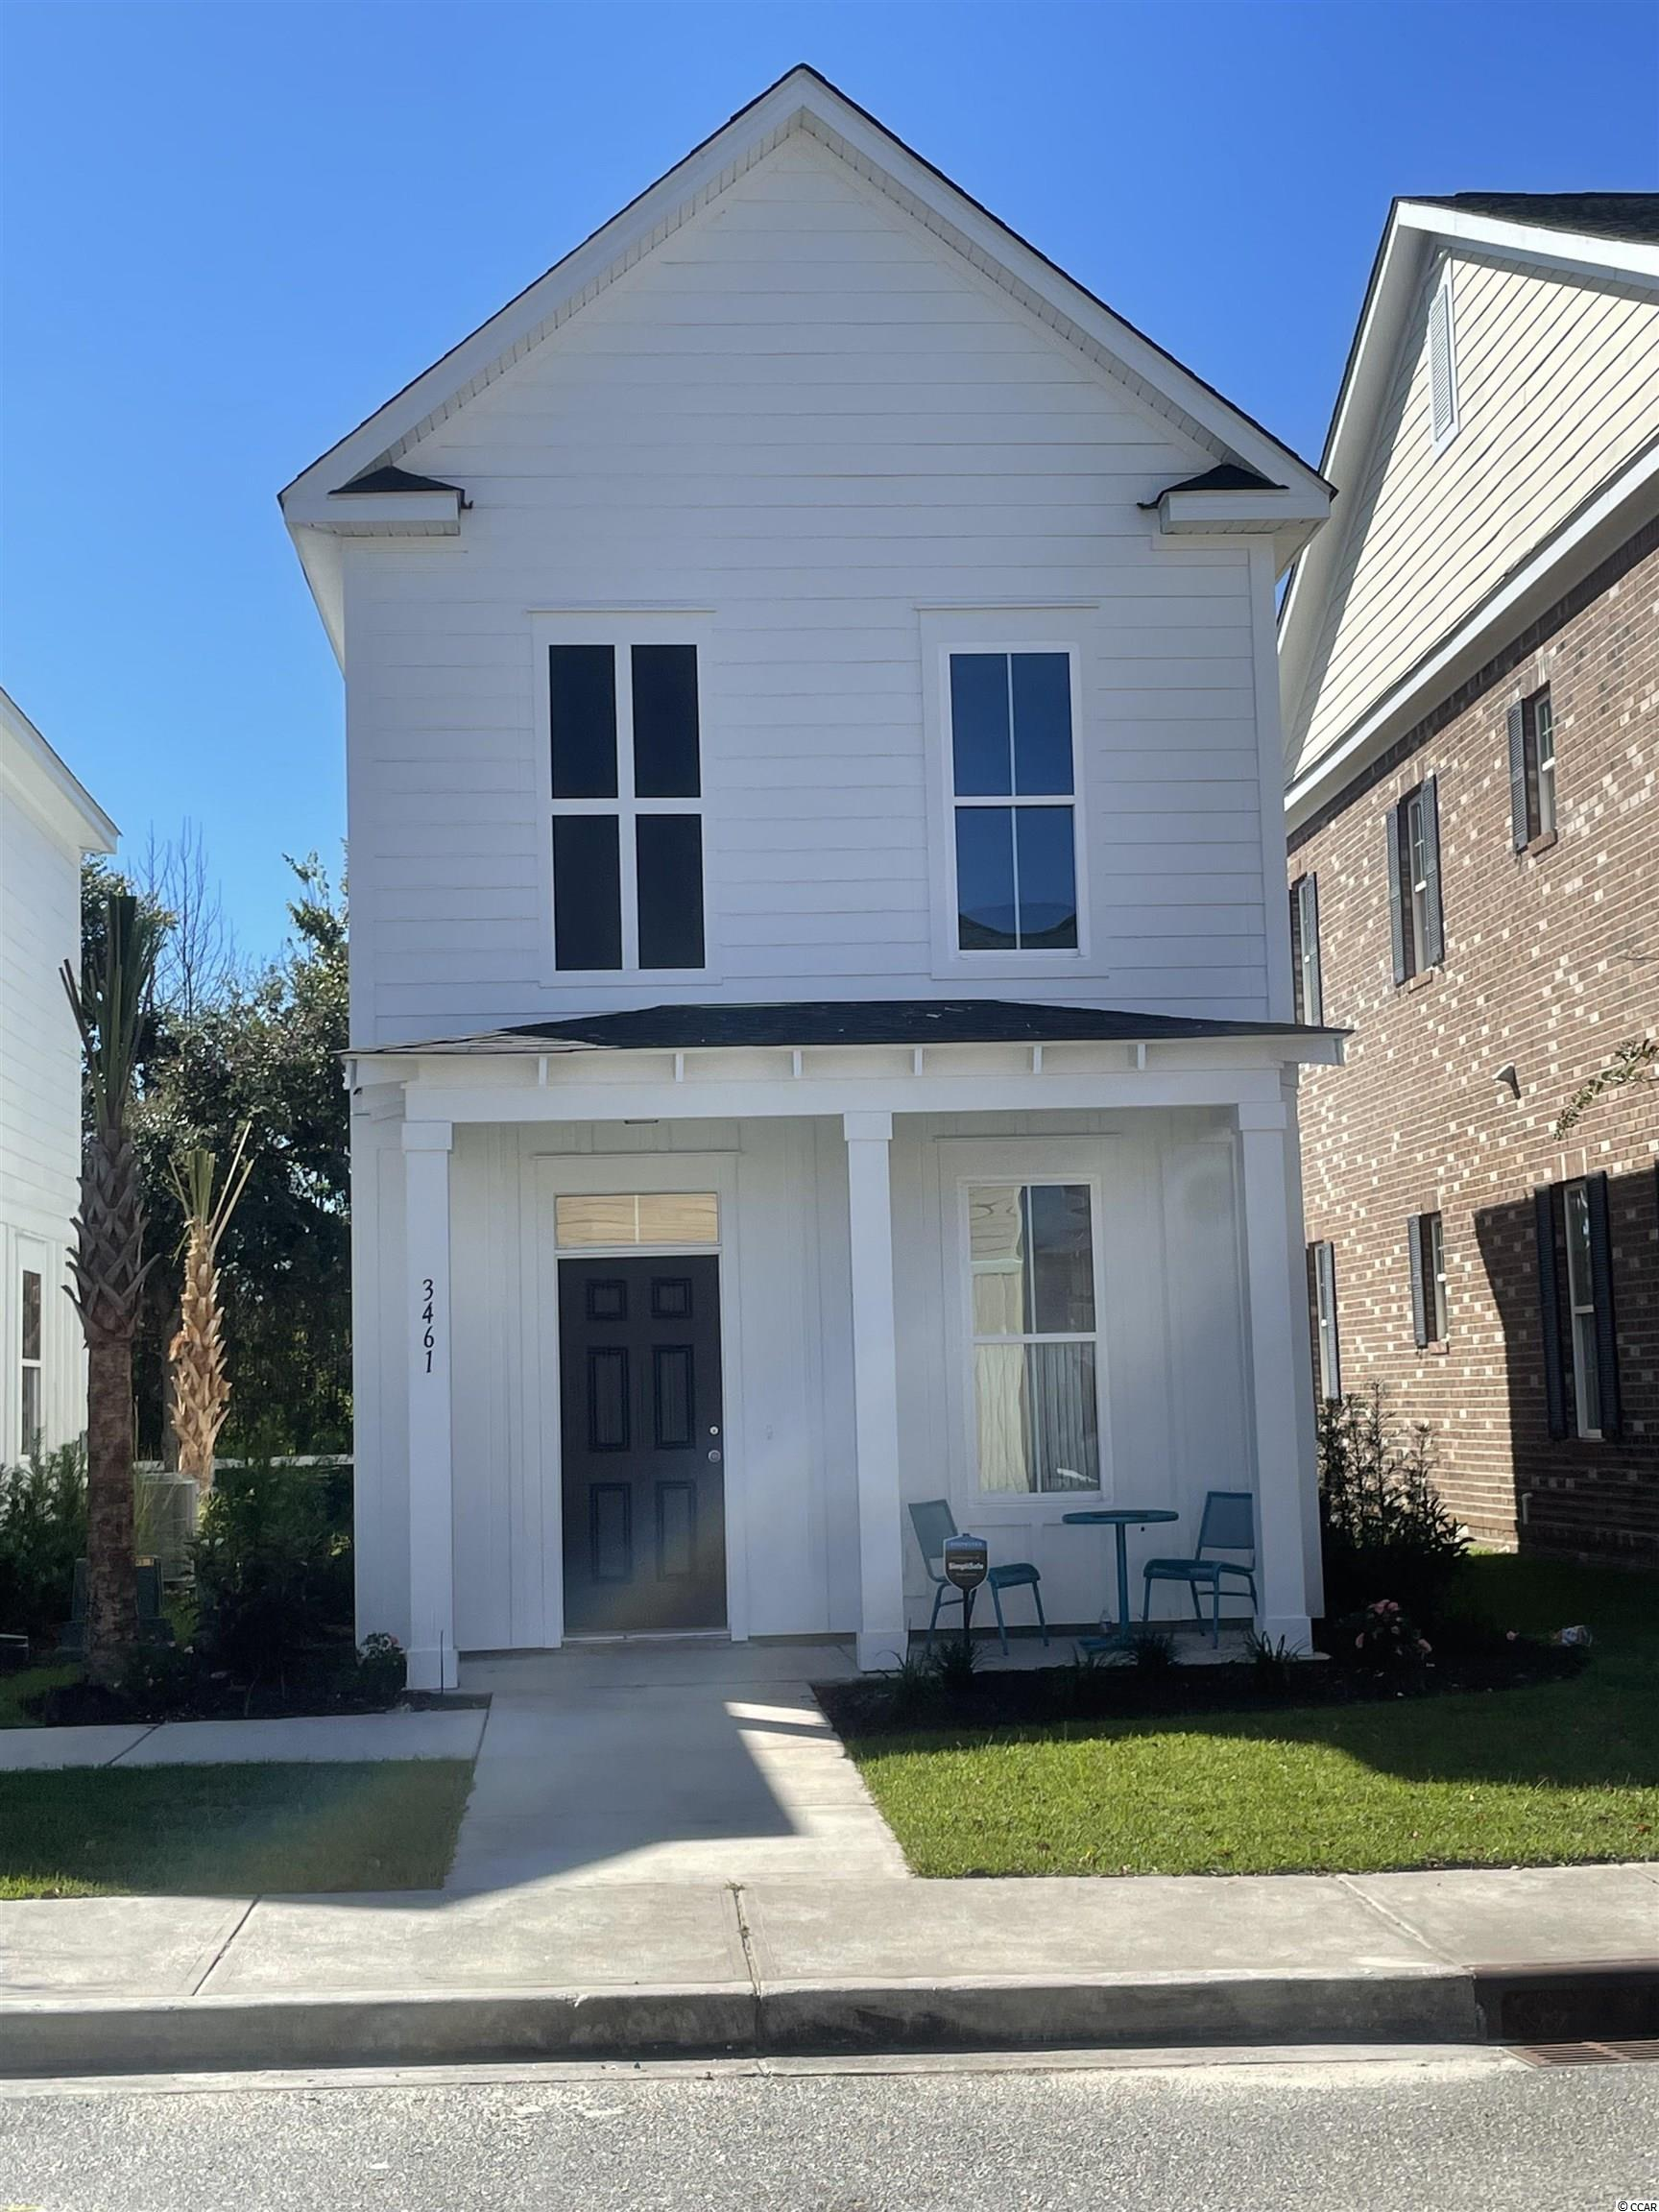 This quaint community is located in the heart of Myrtle Beach between Hwy 17 bypass & 17 business and is surrounded by everything Myrtle Beach has to offer.  The St. James square property offers on site restaurants , salons, professional offices and is only a short golf cart ride to the beach.  The 2 bedroom 2 1/2 bath Masonboro is a light airy floor plan with beautiful interior features including luxury vinyl plank flooring in the main living area, stainless steel appliances, granite countertops , modern white cabinetry with a large kitchen island and pantry, designer lighting package, ceiling fans and a Walk-in closet in the master bedroom.